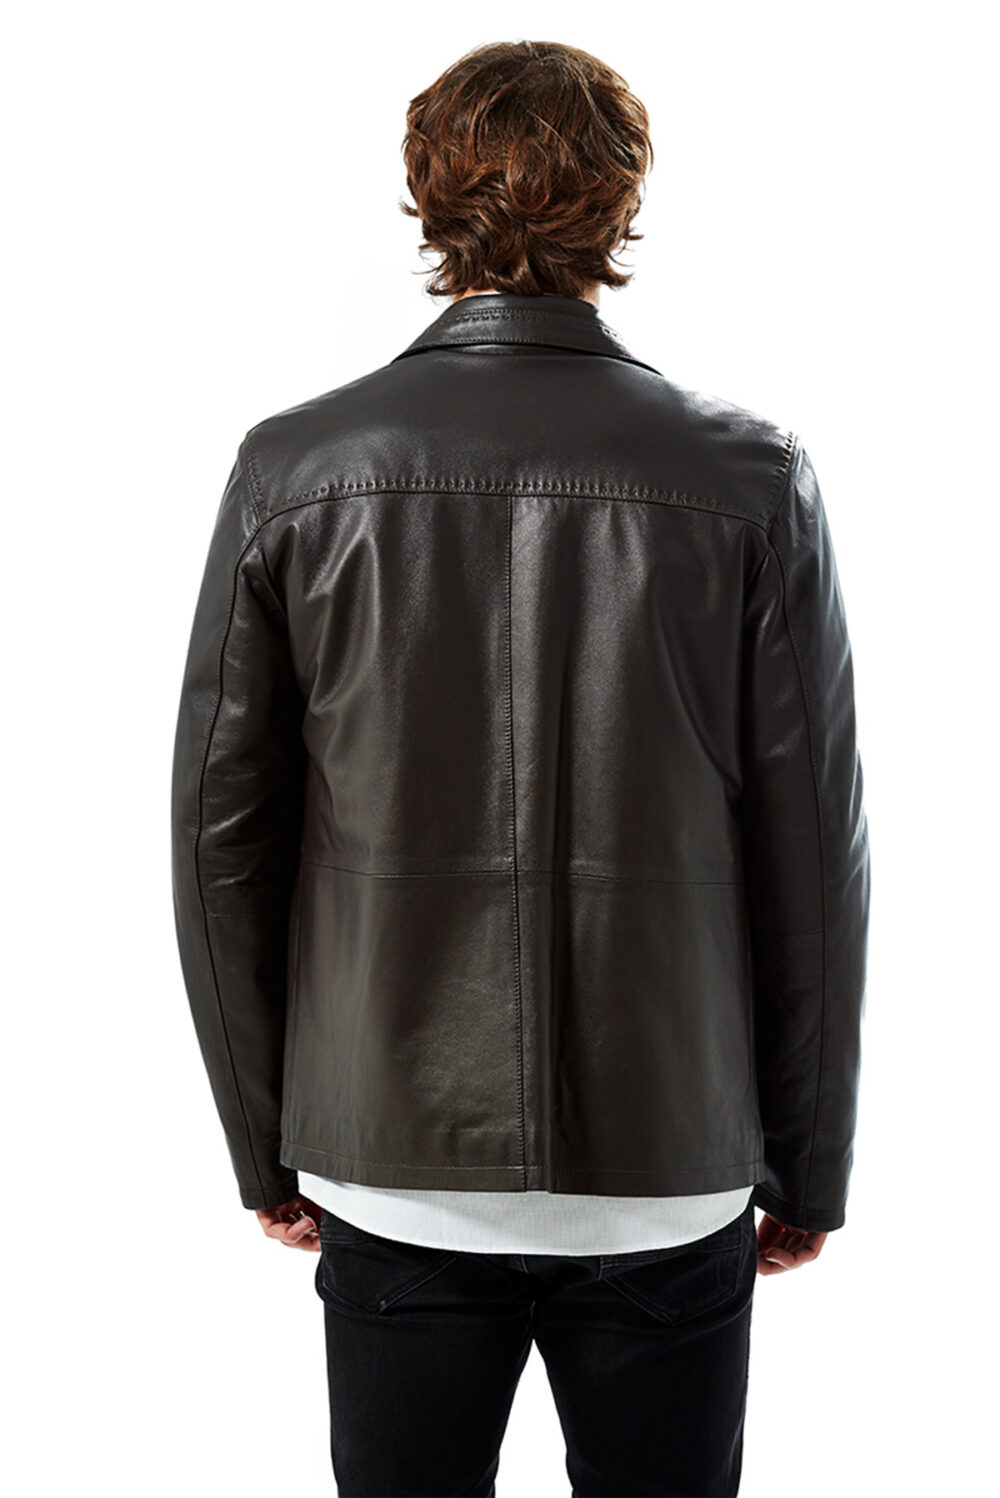 Kopia Retro Classic Men's Leather Jacket